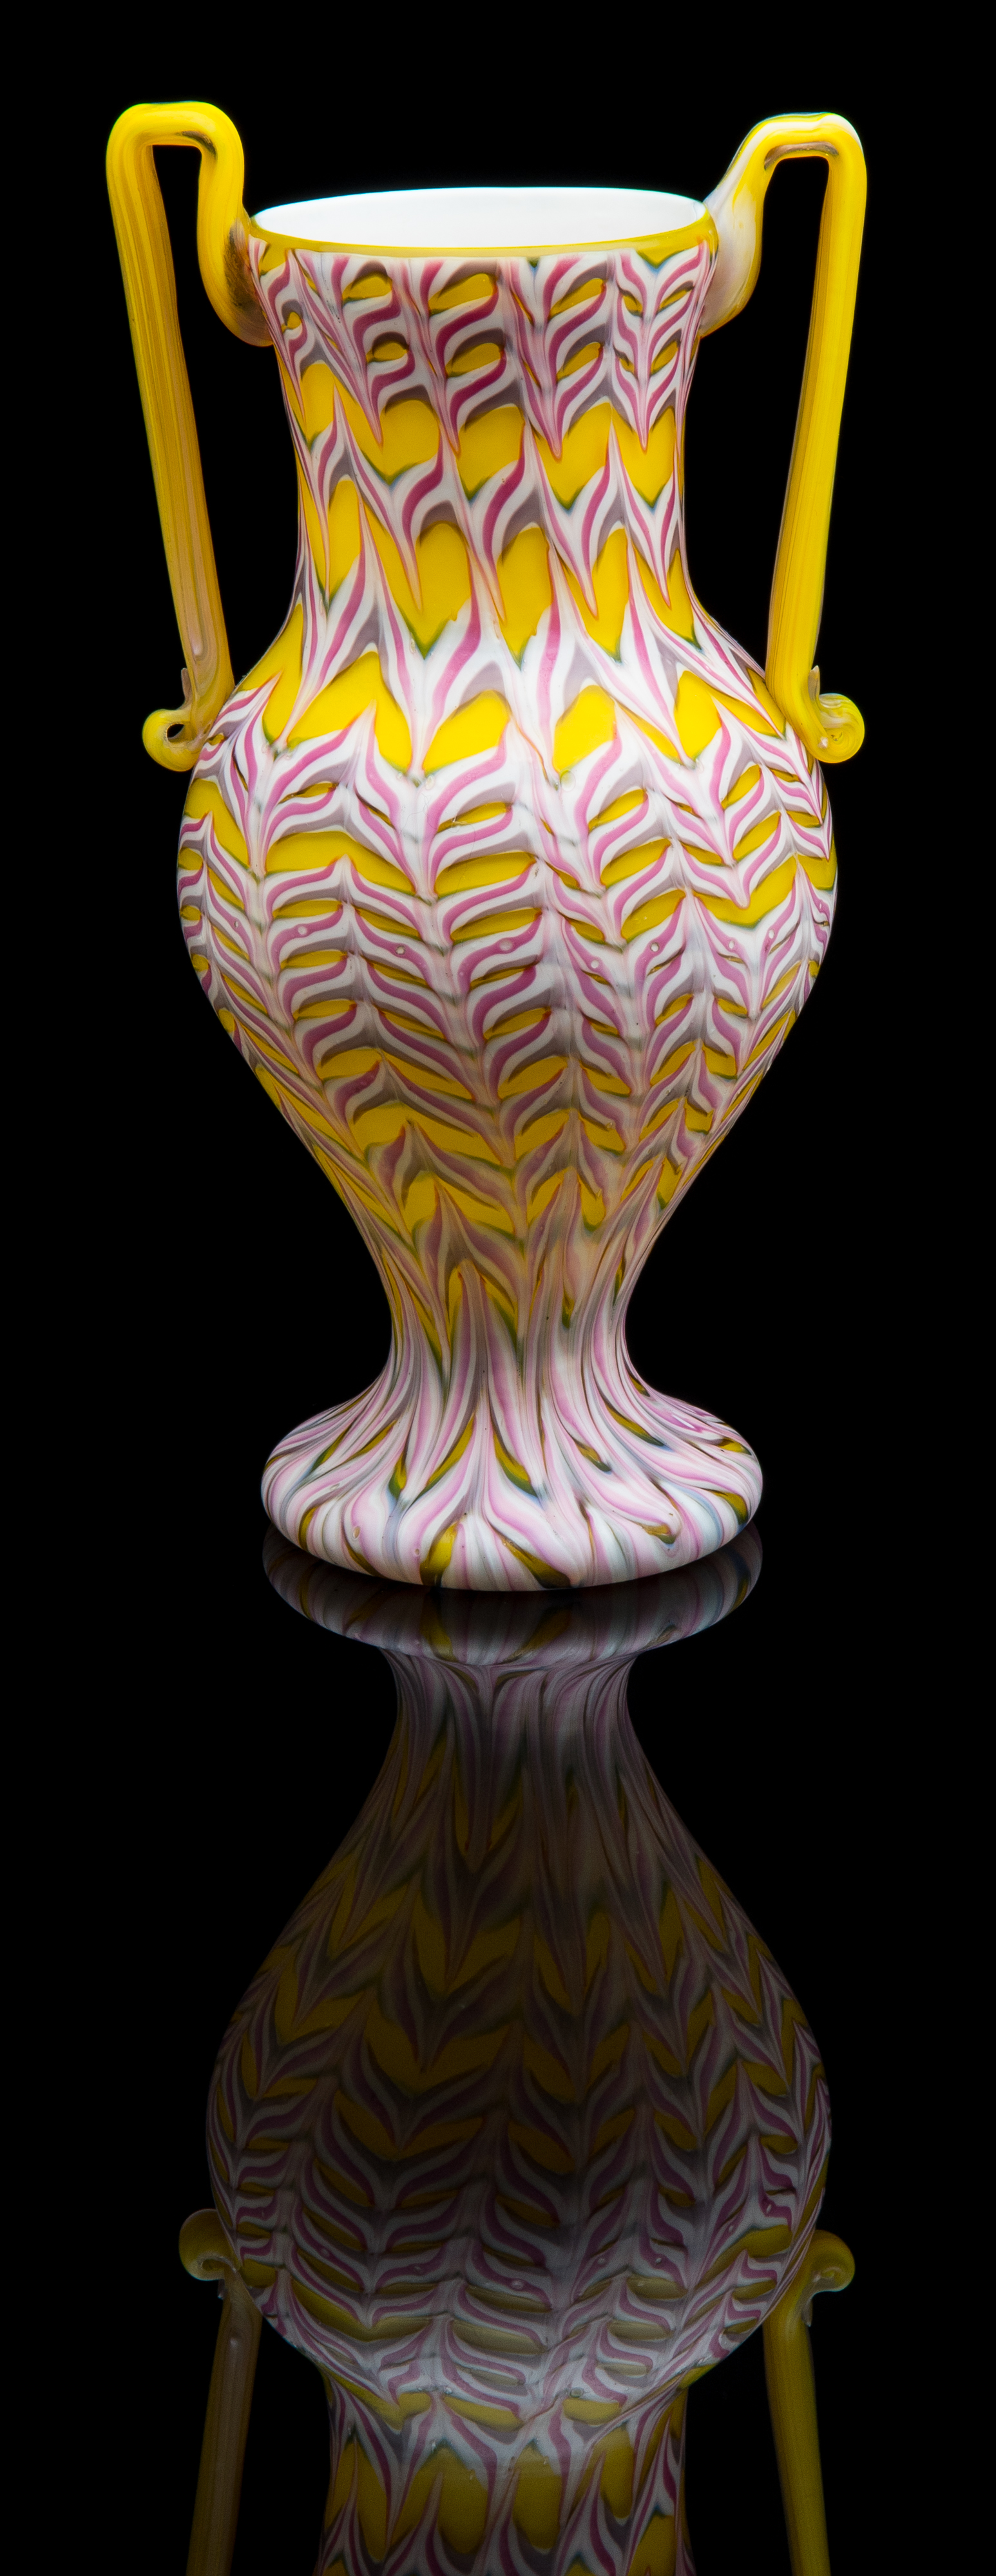 Fratelli Toso,  Yellow, Pink and White Fenicio Double Handled Vase  (1910, glass), VV.866